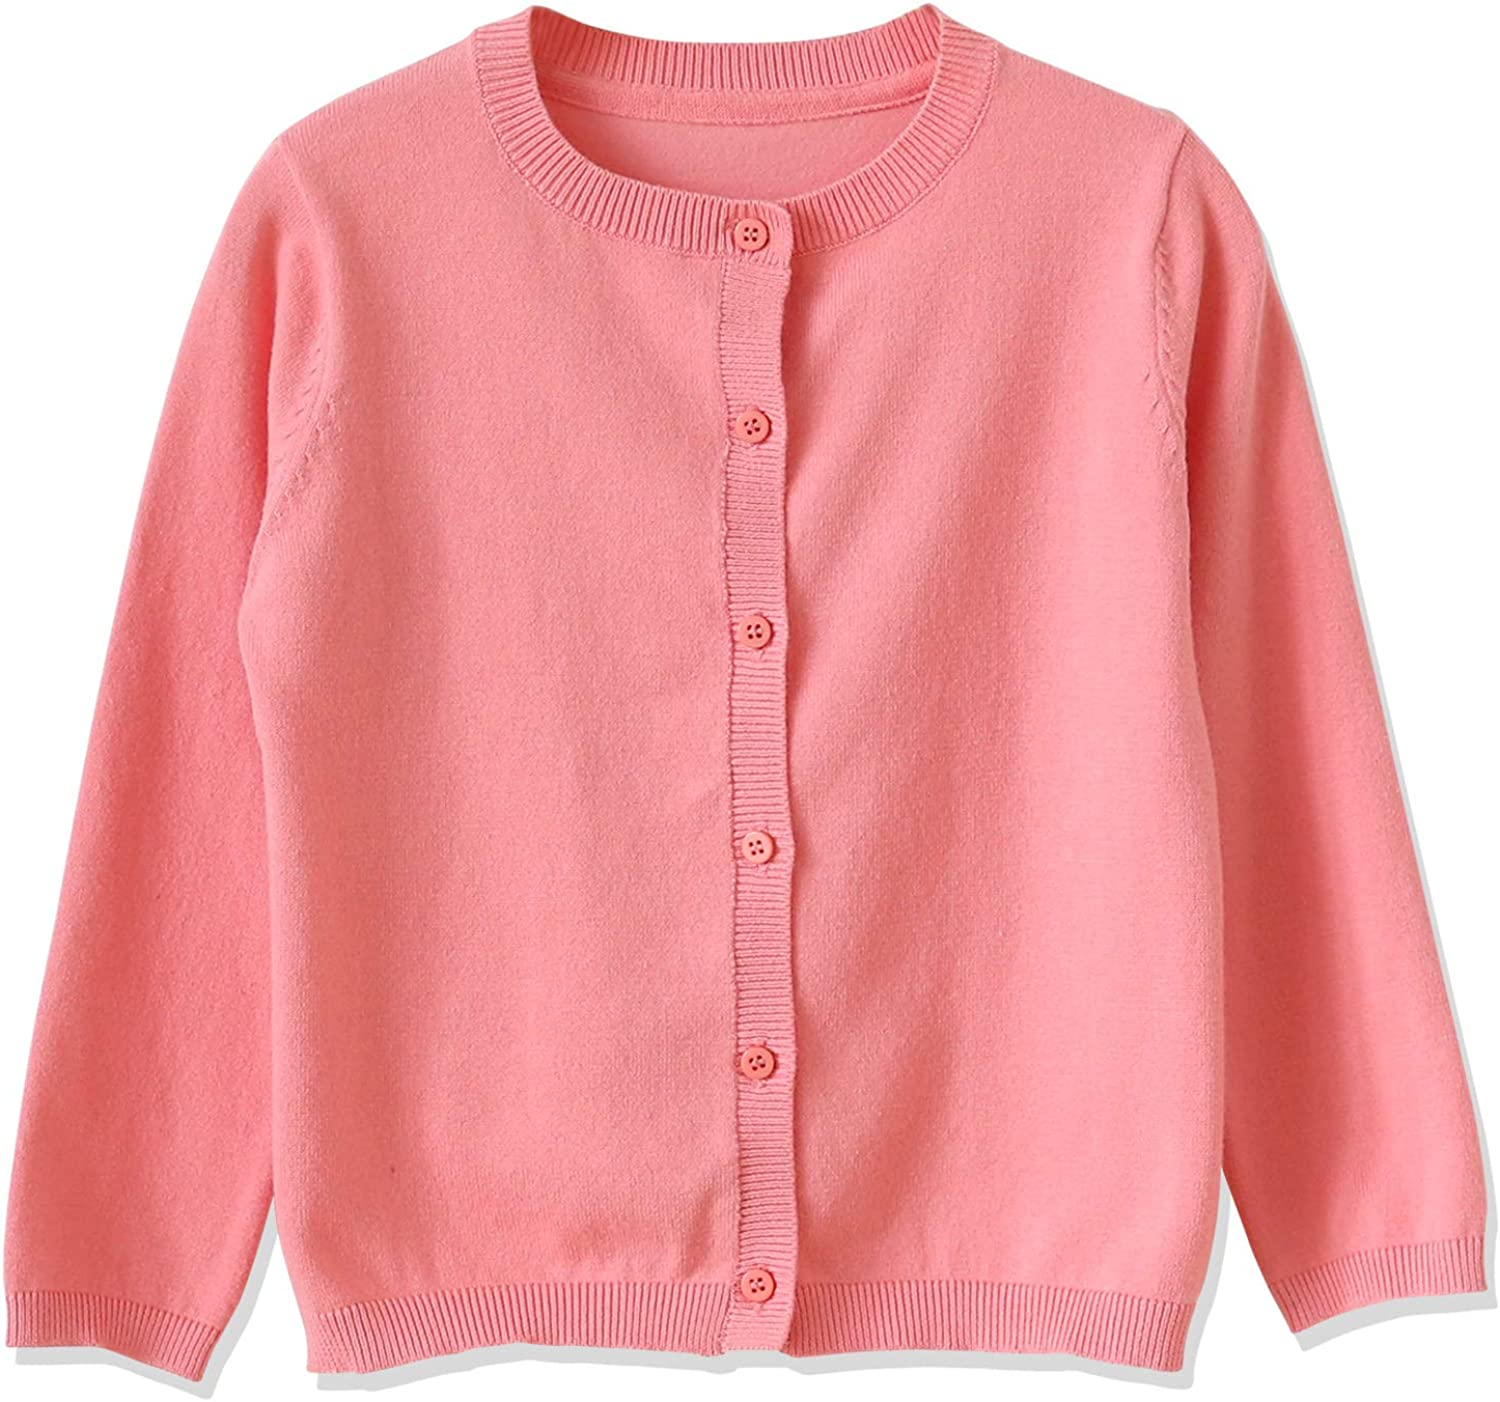 CUNYI Girls Crewneck Lightweight Button-up Cardigan Cotton Knit Sweater Casual Outerwear